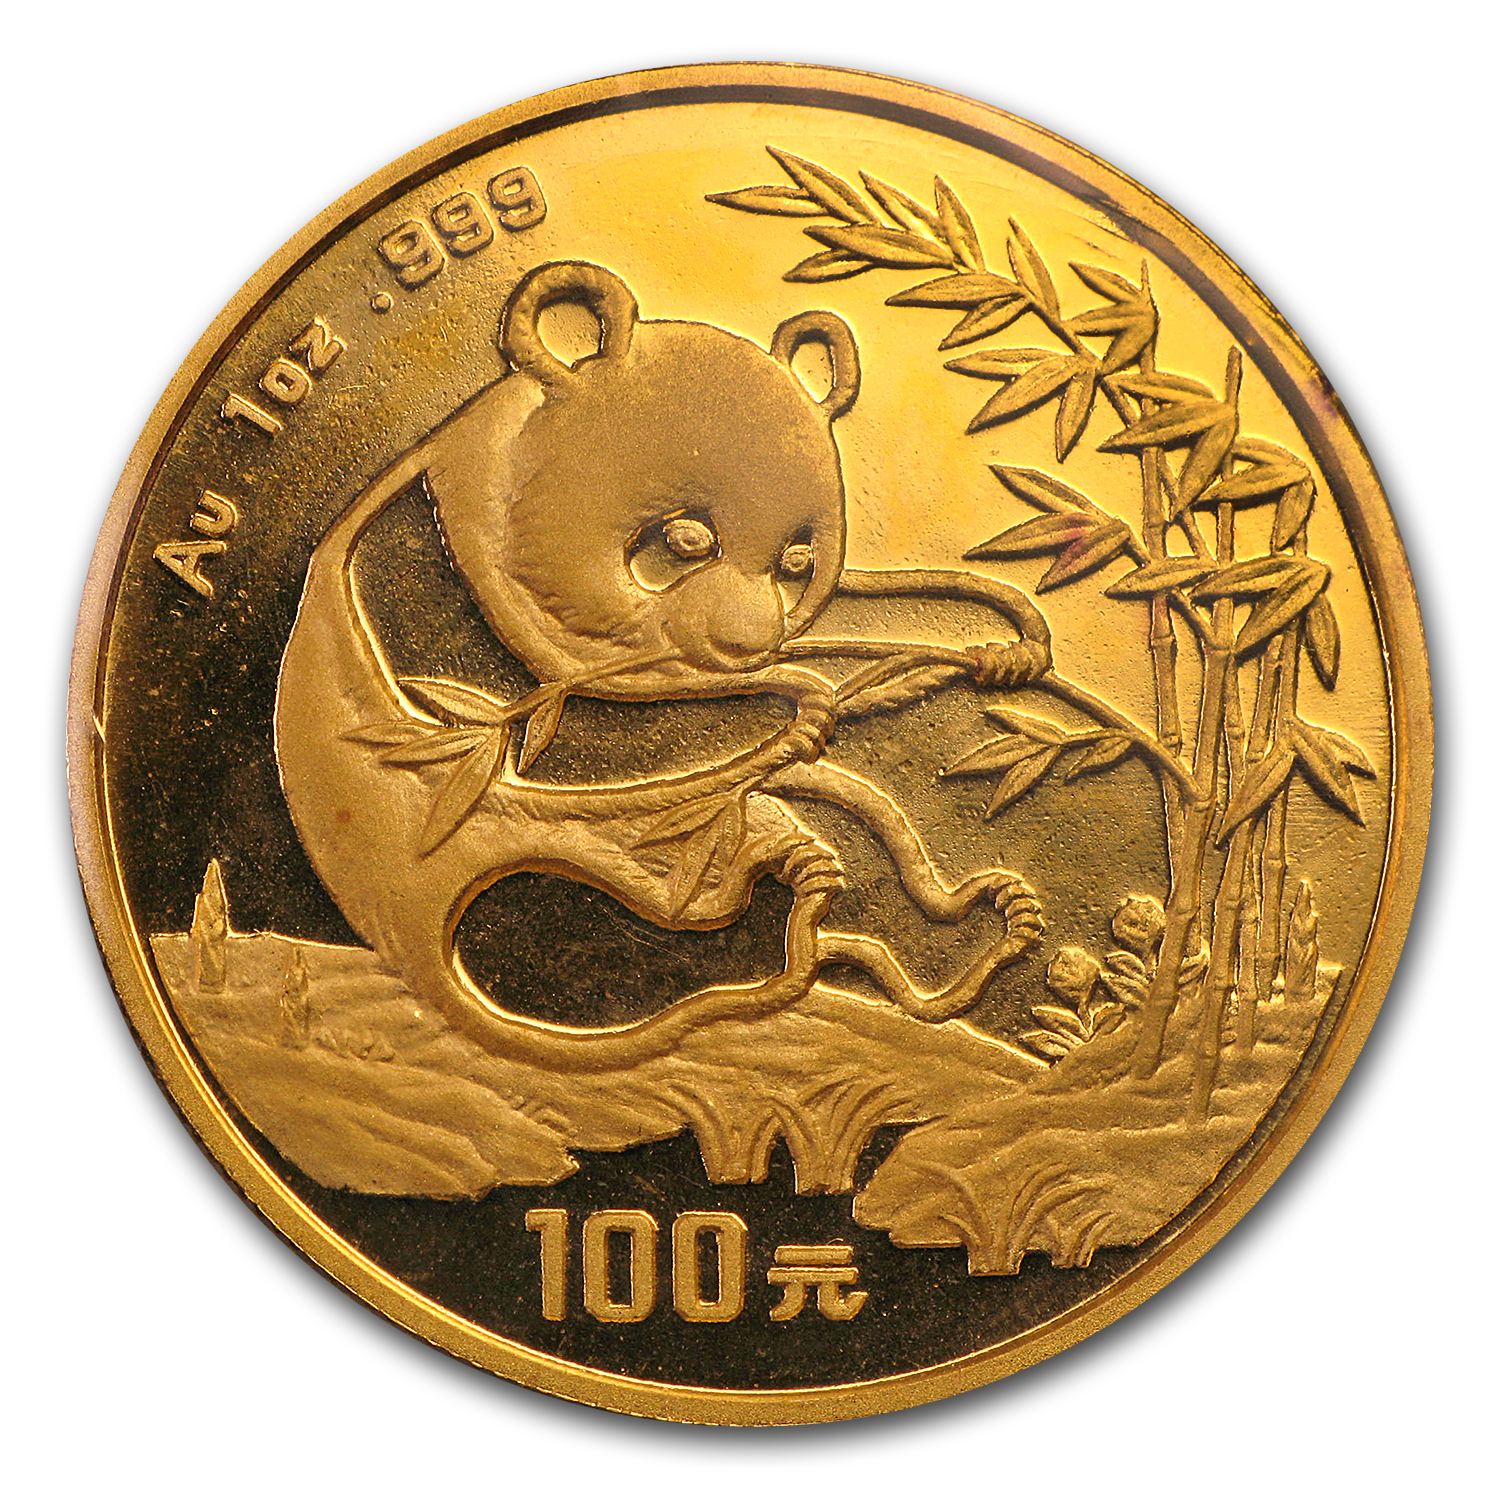 1994 China 1 oz Gold Panda Large Date BU (Sealed)